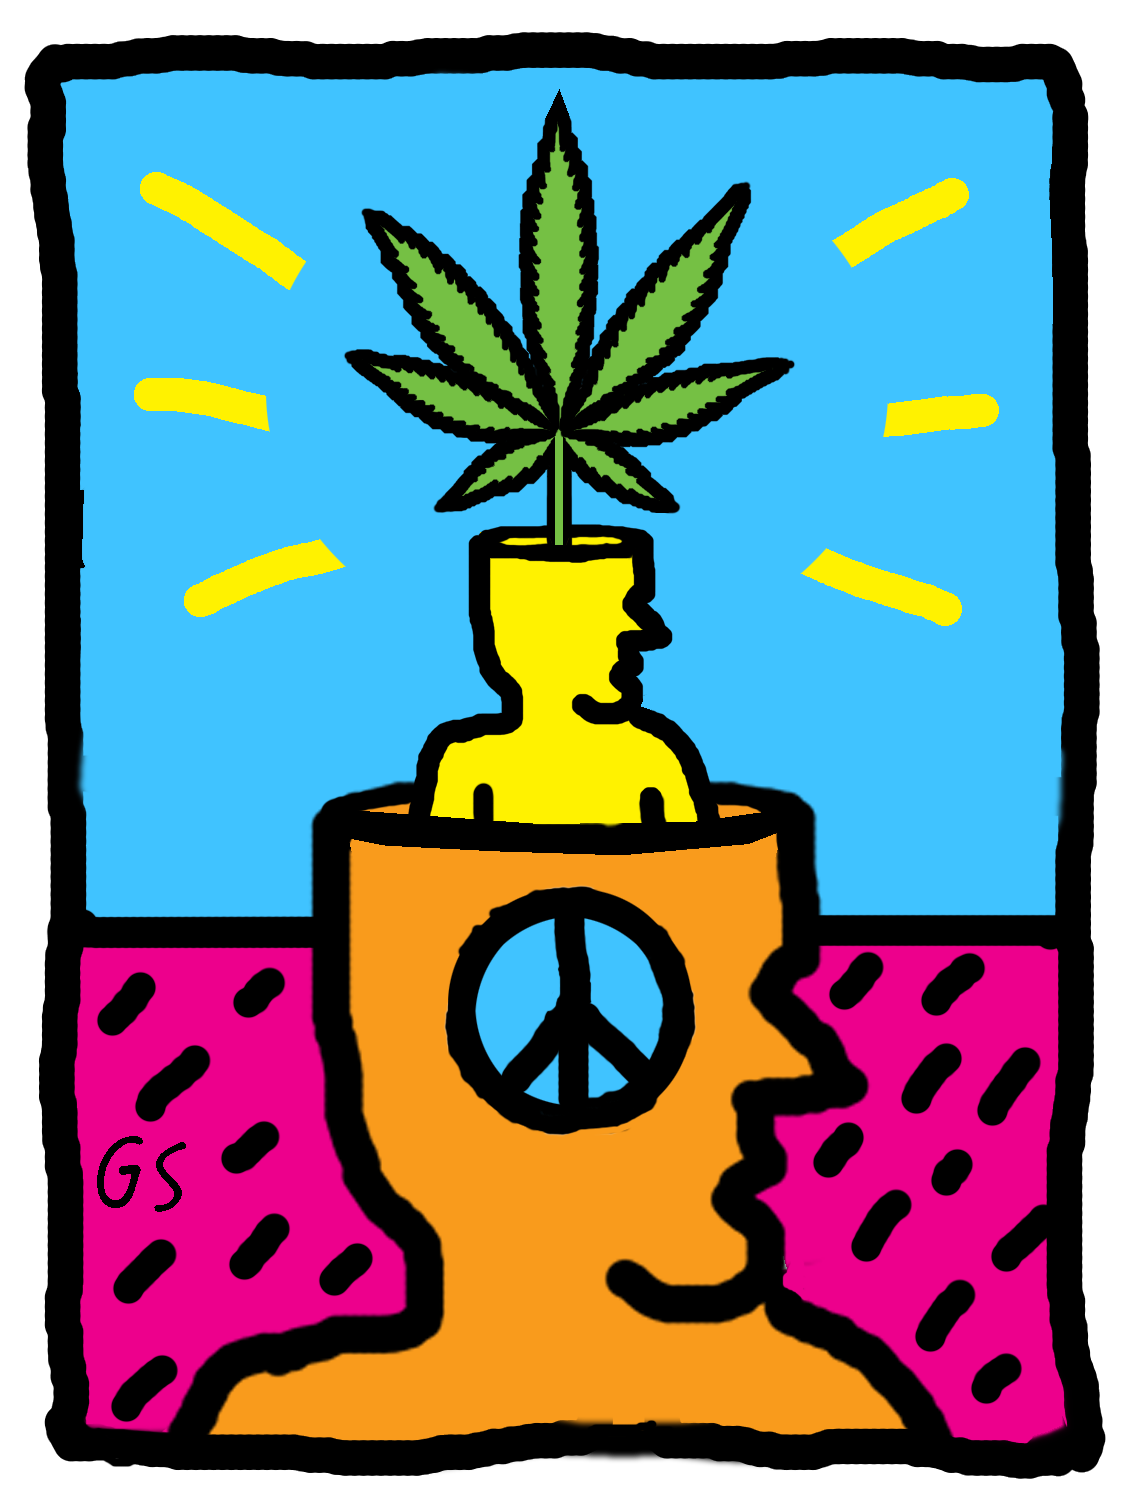 Graffiti clipart peace. Expand your mind posters